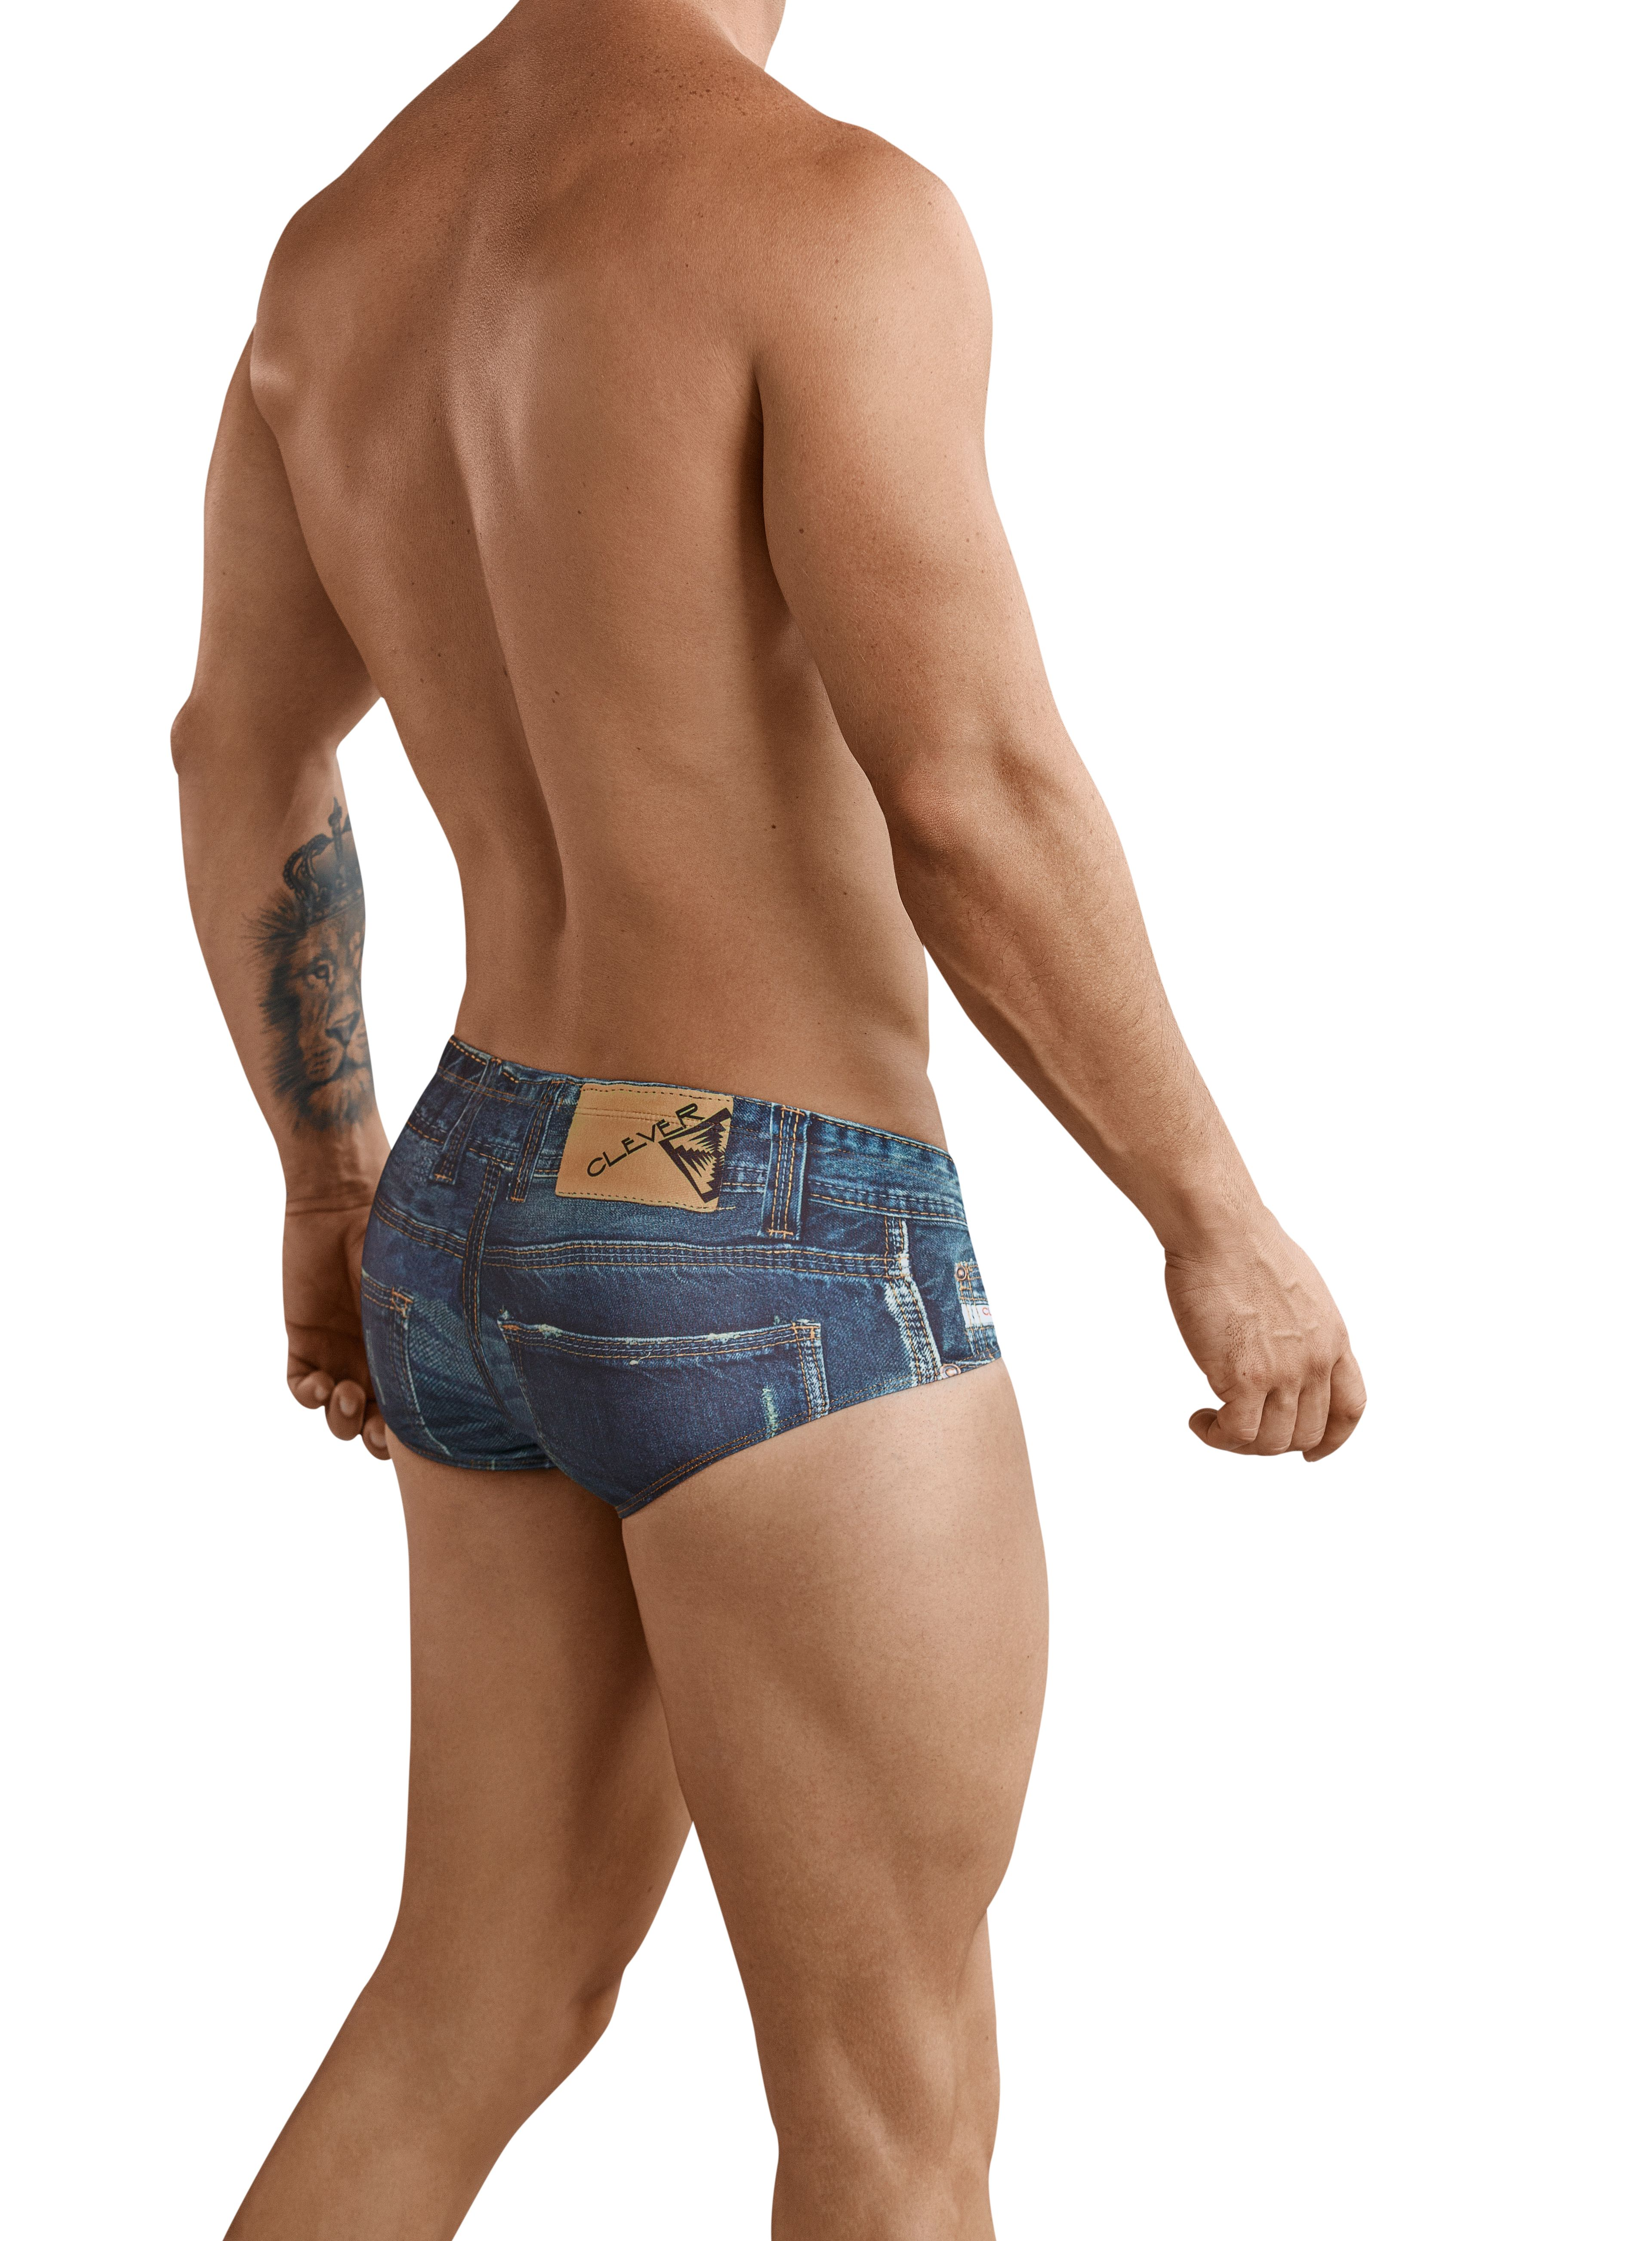 Denim Jeans Latin Brief - Clever 2